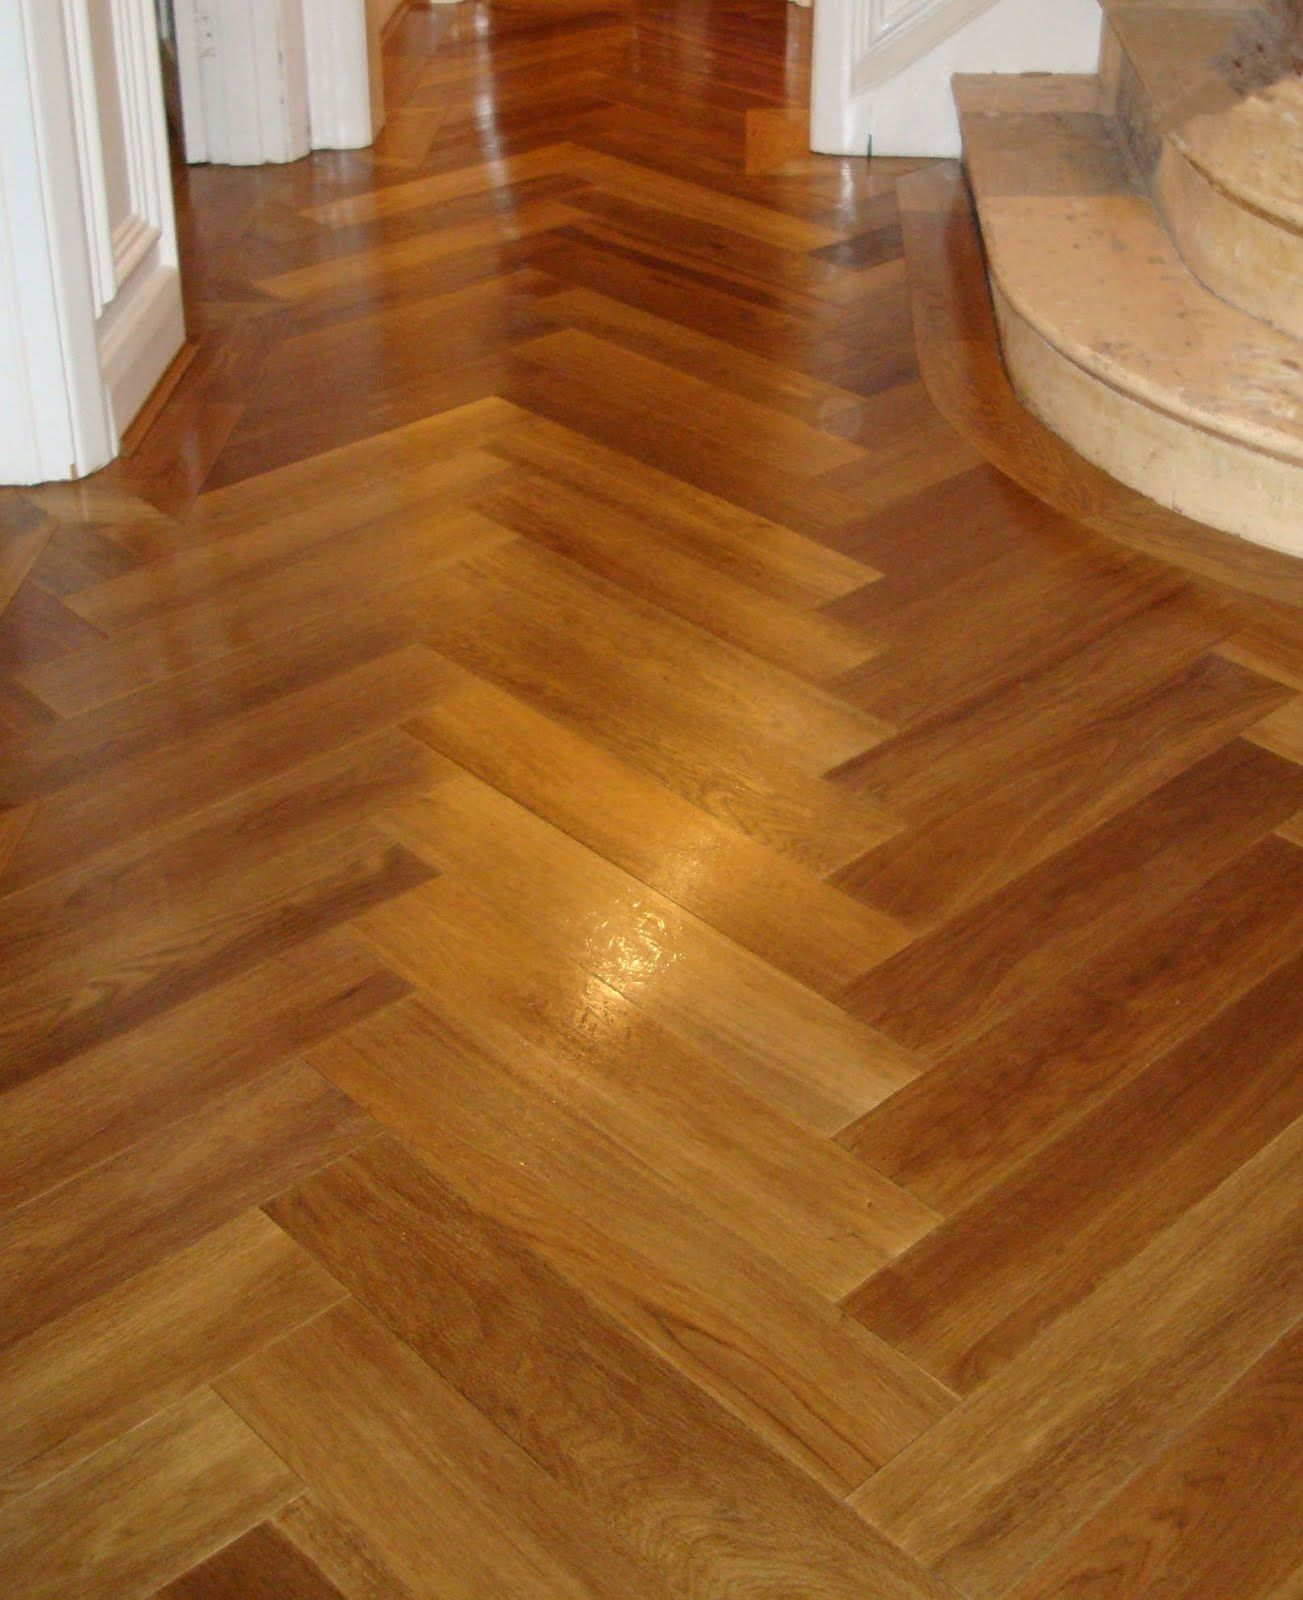 Hardwood Floor Designs wood flooring design interior design ideas Wood Flooring Ideas Wood Floorwood Floor Designwood Floor Design Ideas